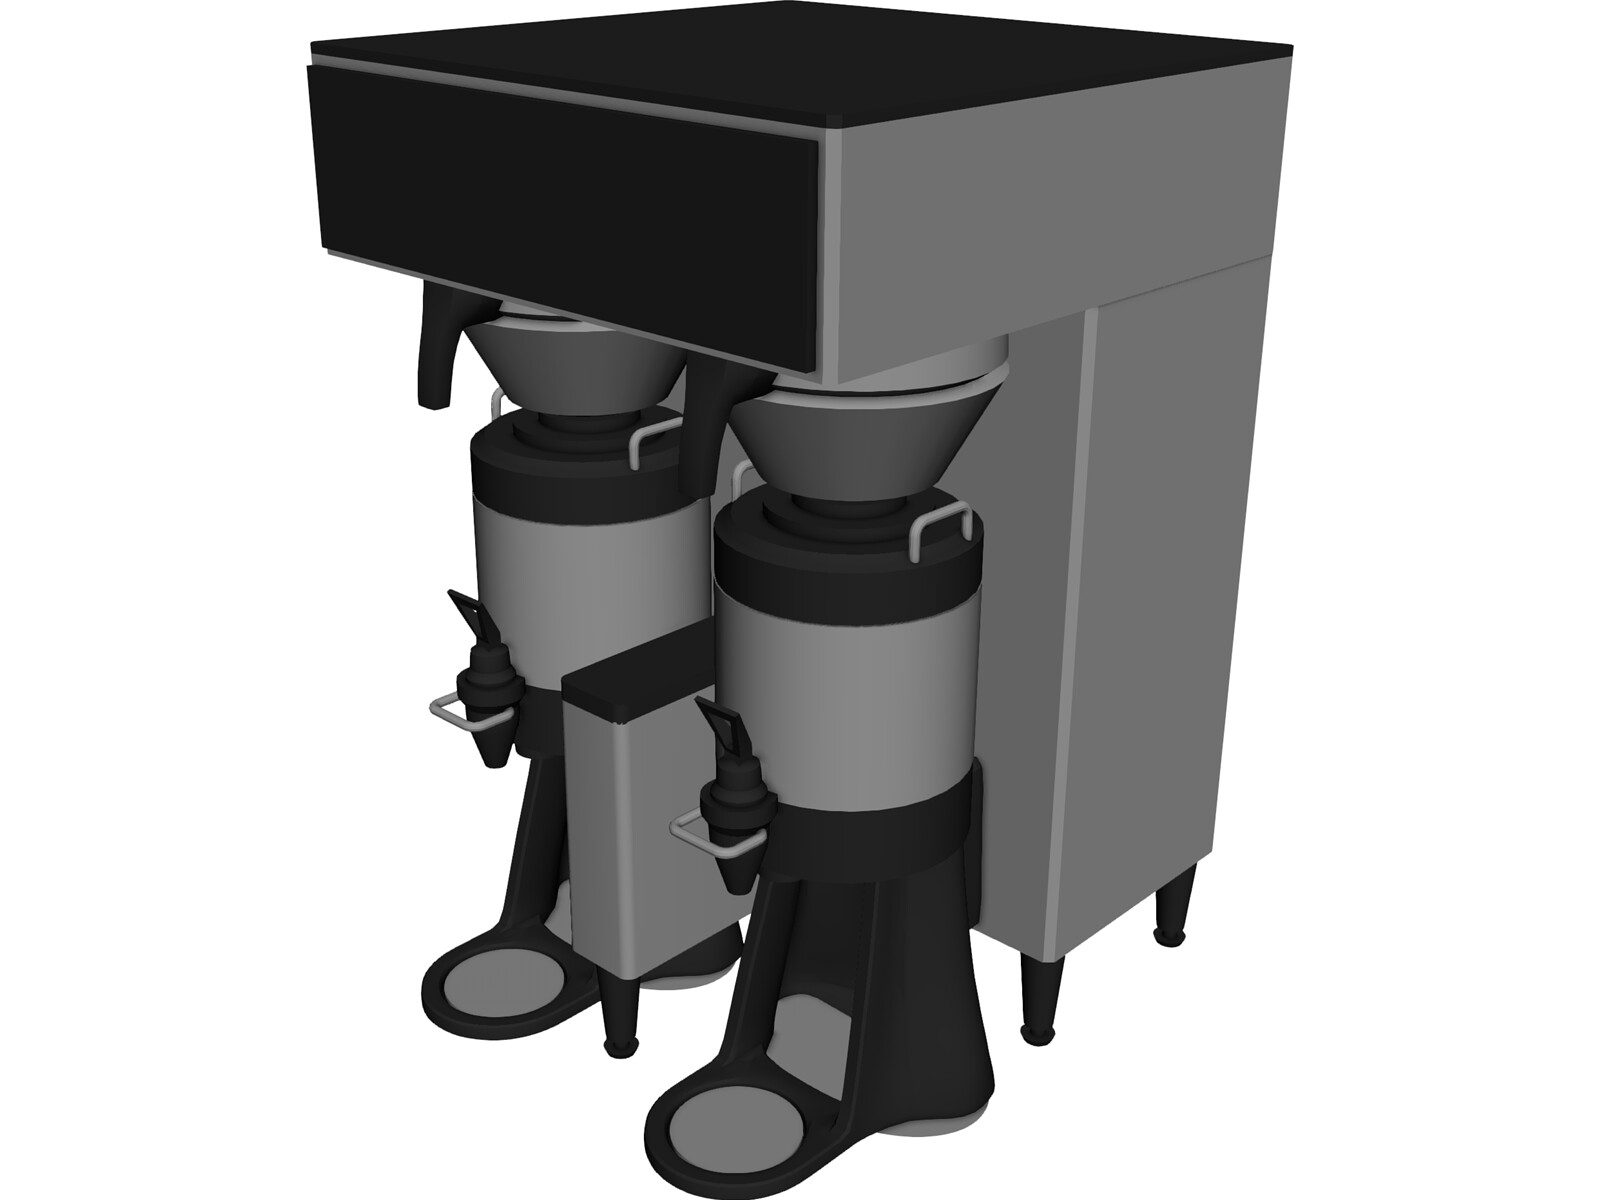 Bunn Coffee Maker 3D Model